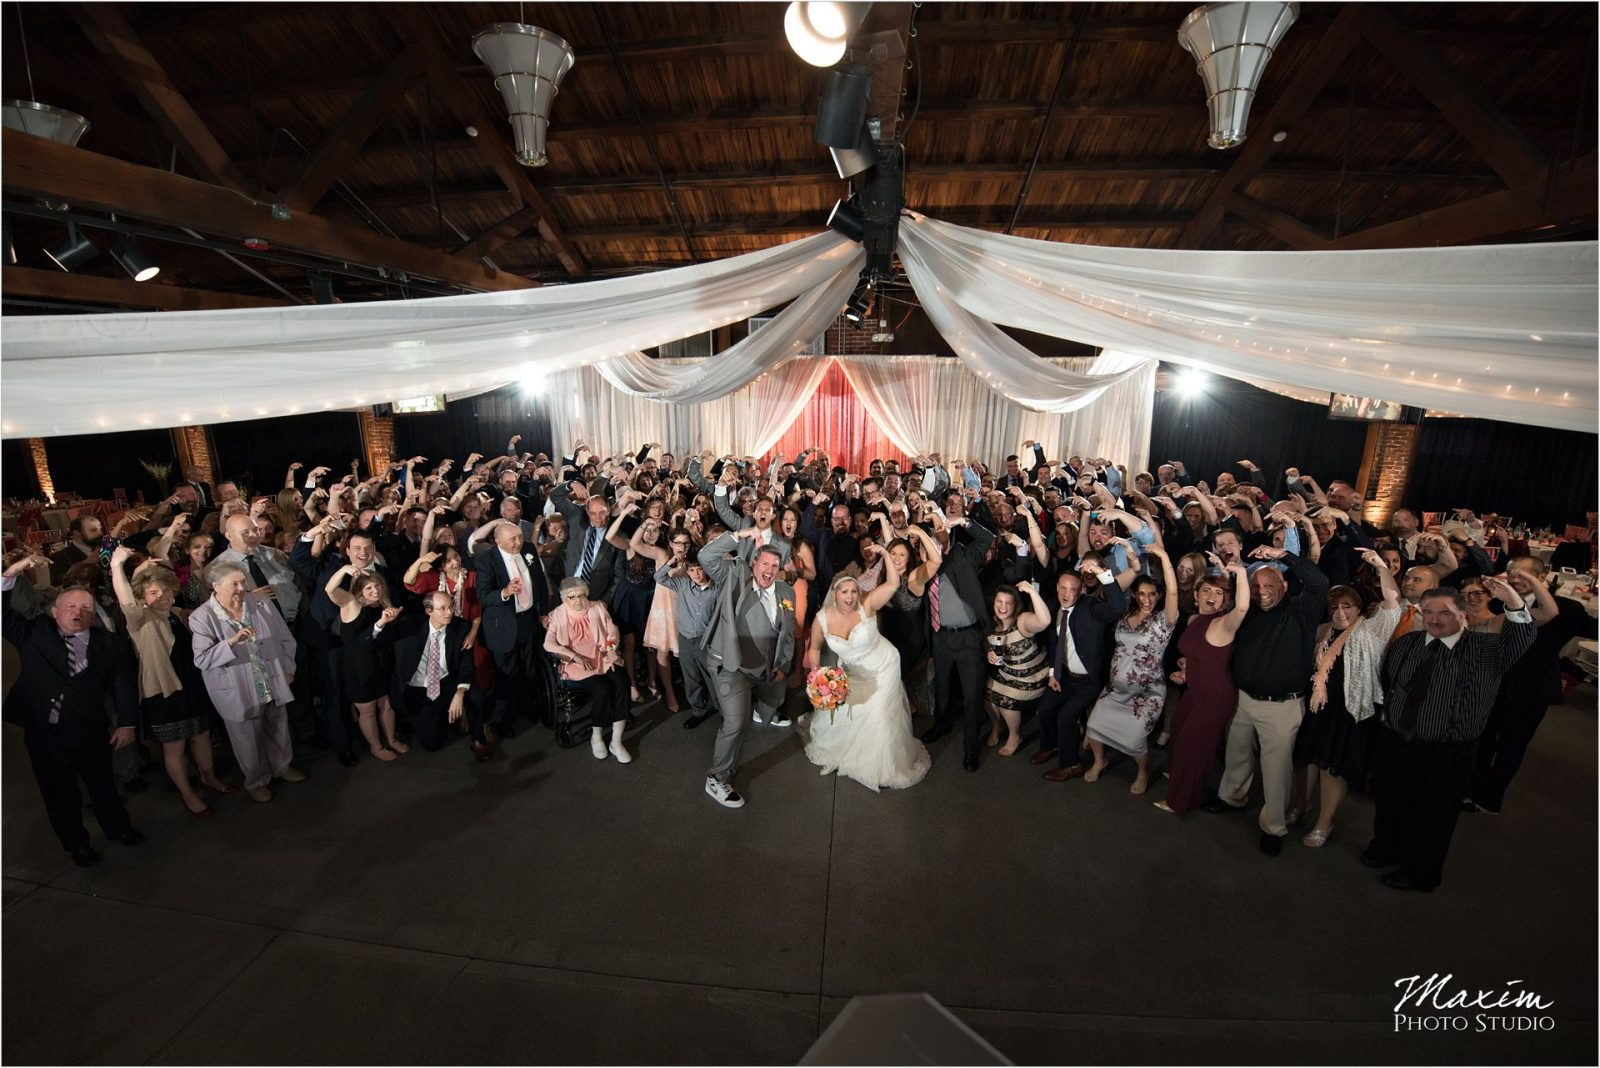 Top of the Market Dayton Ohio Wedding Reception group Photo